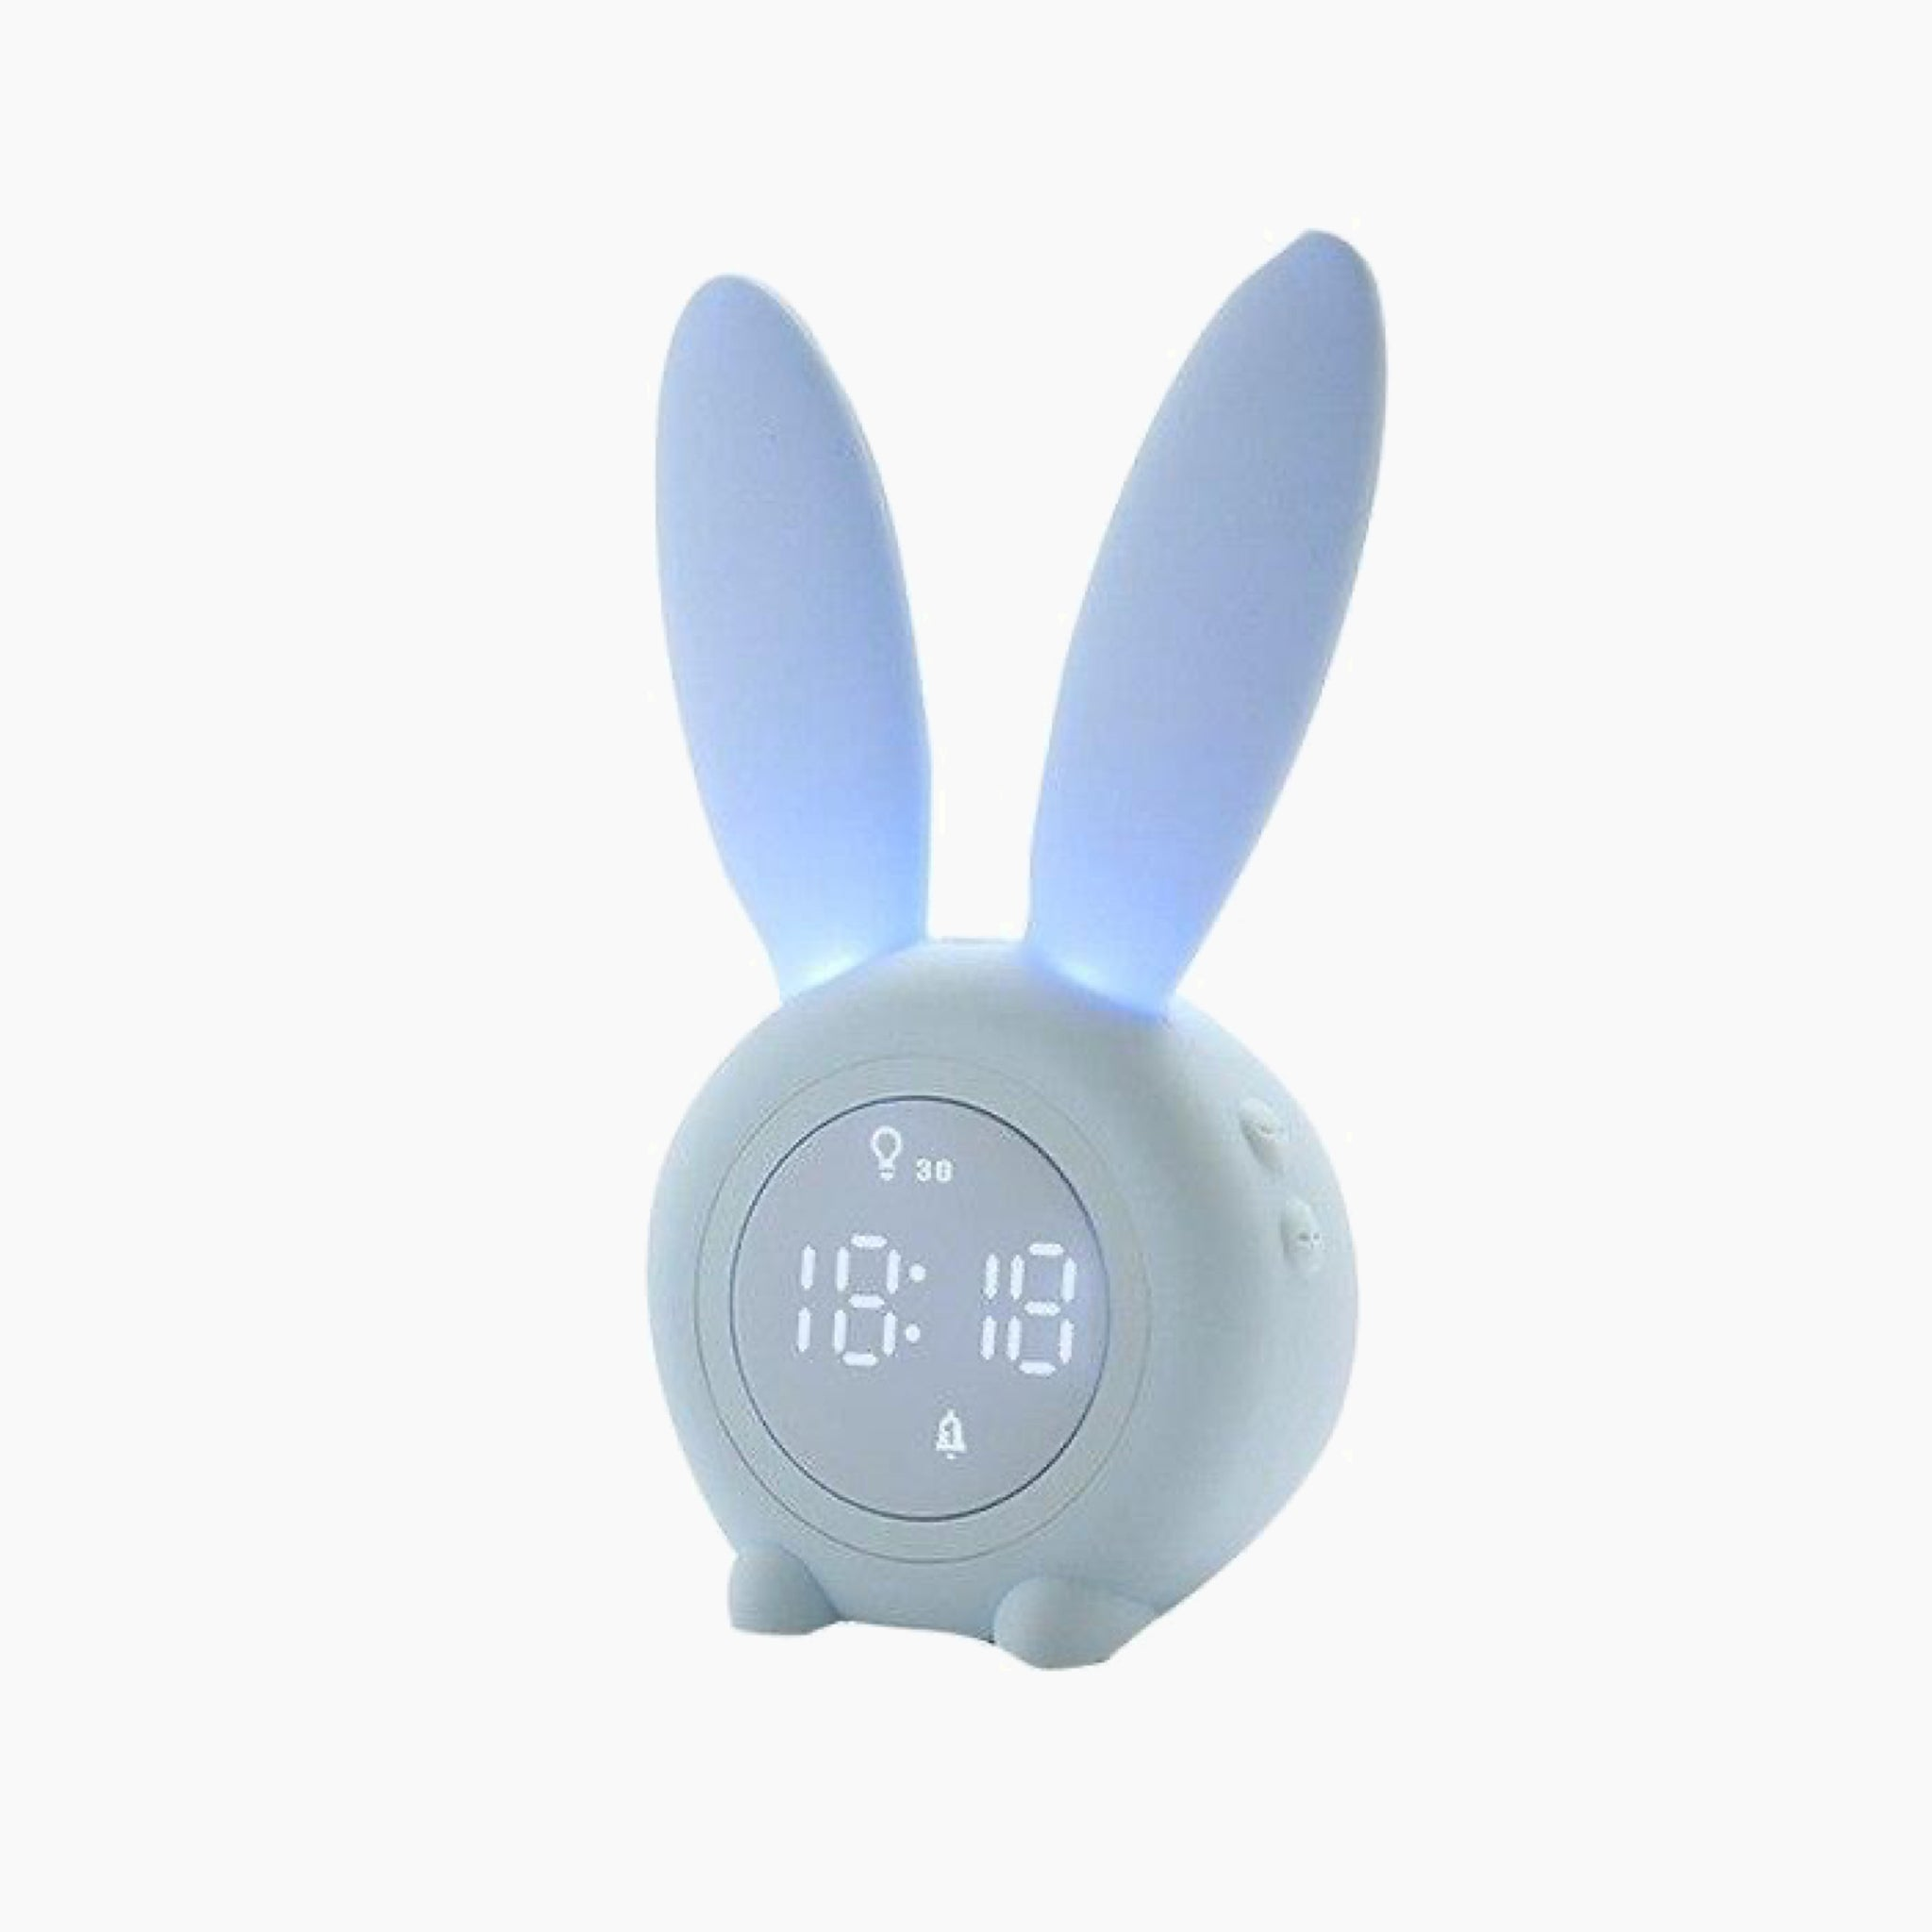 Cute Rabbit Blue Digital Alarm Clock Wake Up Light Table LED Lamp Snooze Clocks Sunrise Sunset Alarm Clock Table Decoration Bedroom Accessories Trend